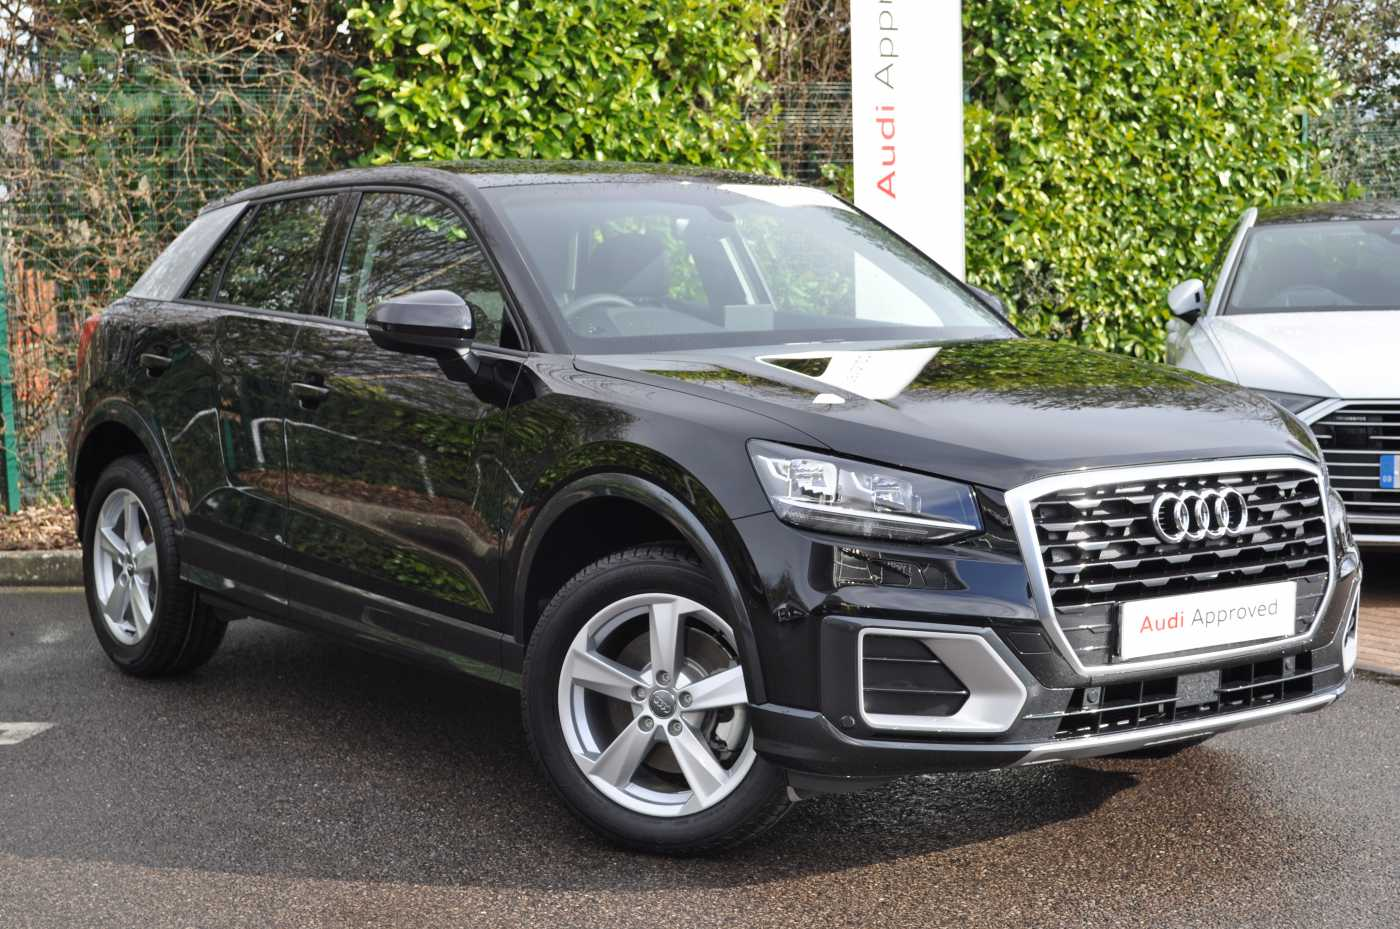 Approved Used Audi Q2 Sport 30 TDI 116 PS 6-speed (WF19YDP